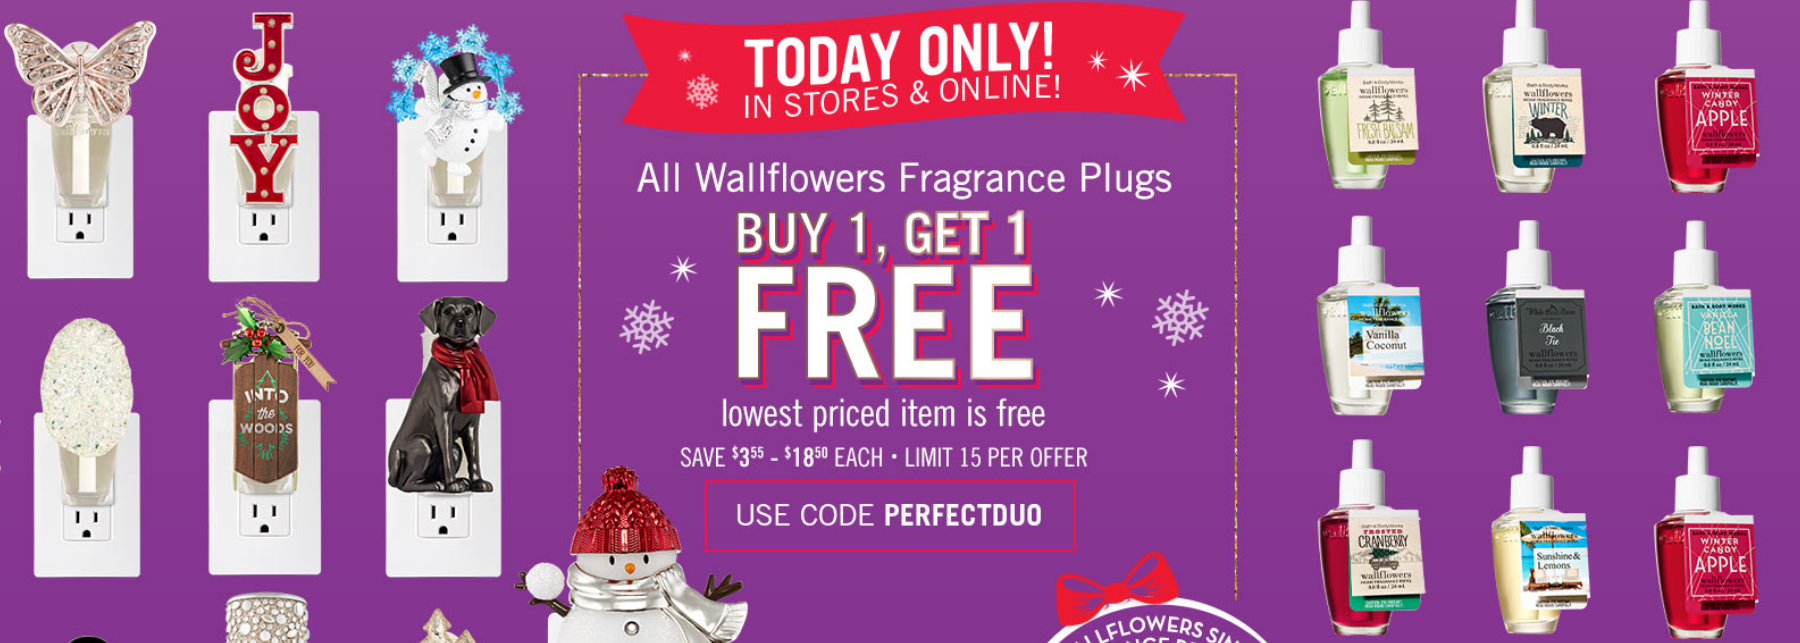 Bath & Body Works – Wallflowers Fragrance Plugs BOGO FREE AND $2.95 Wallflower Fragrance Refills (Online & In Store)